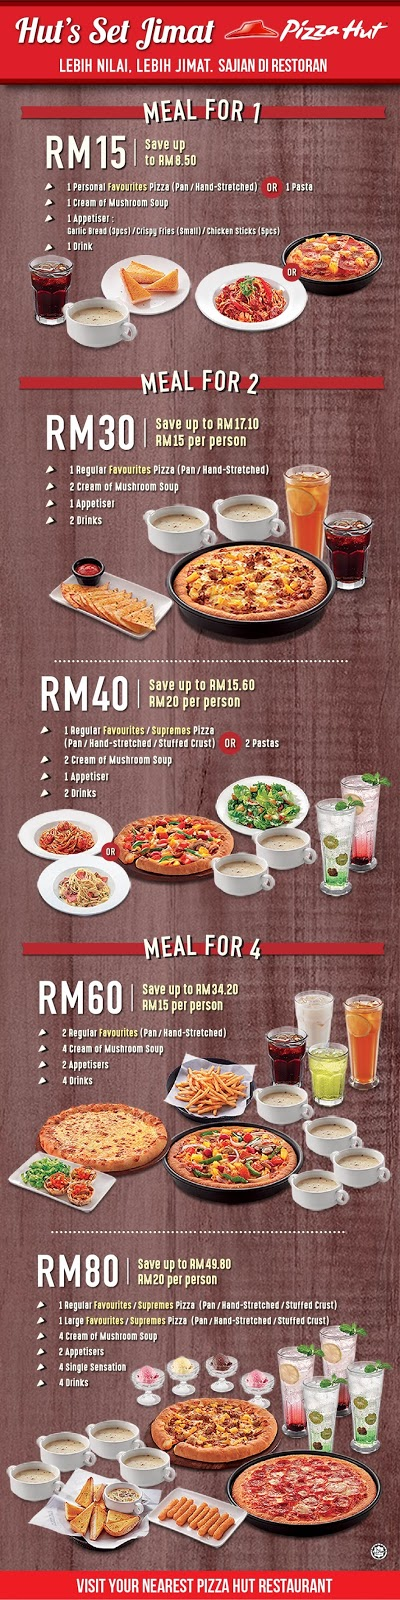 Pizza Hut's Set Jimat Meal Combo Discount Deal Promo